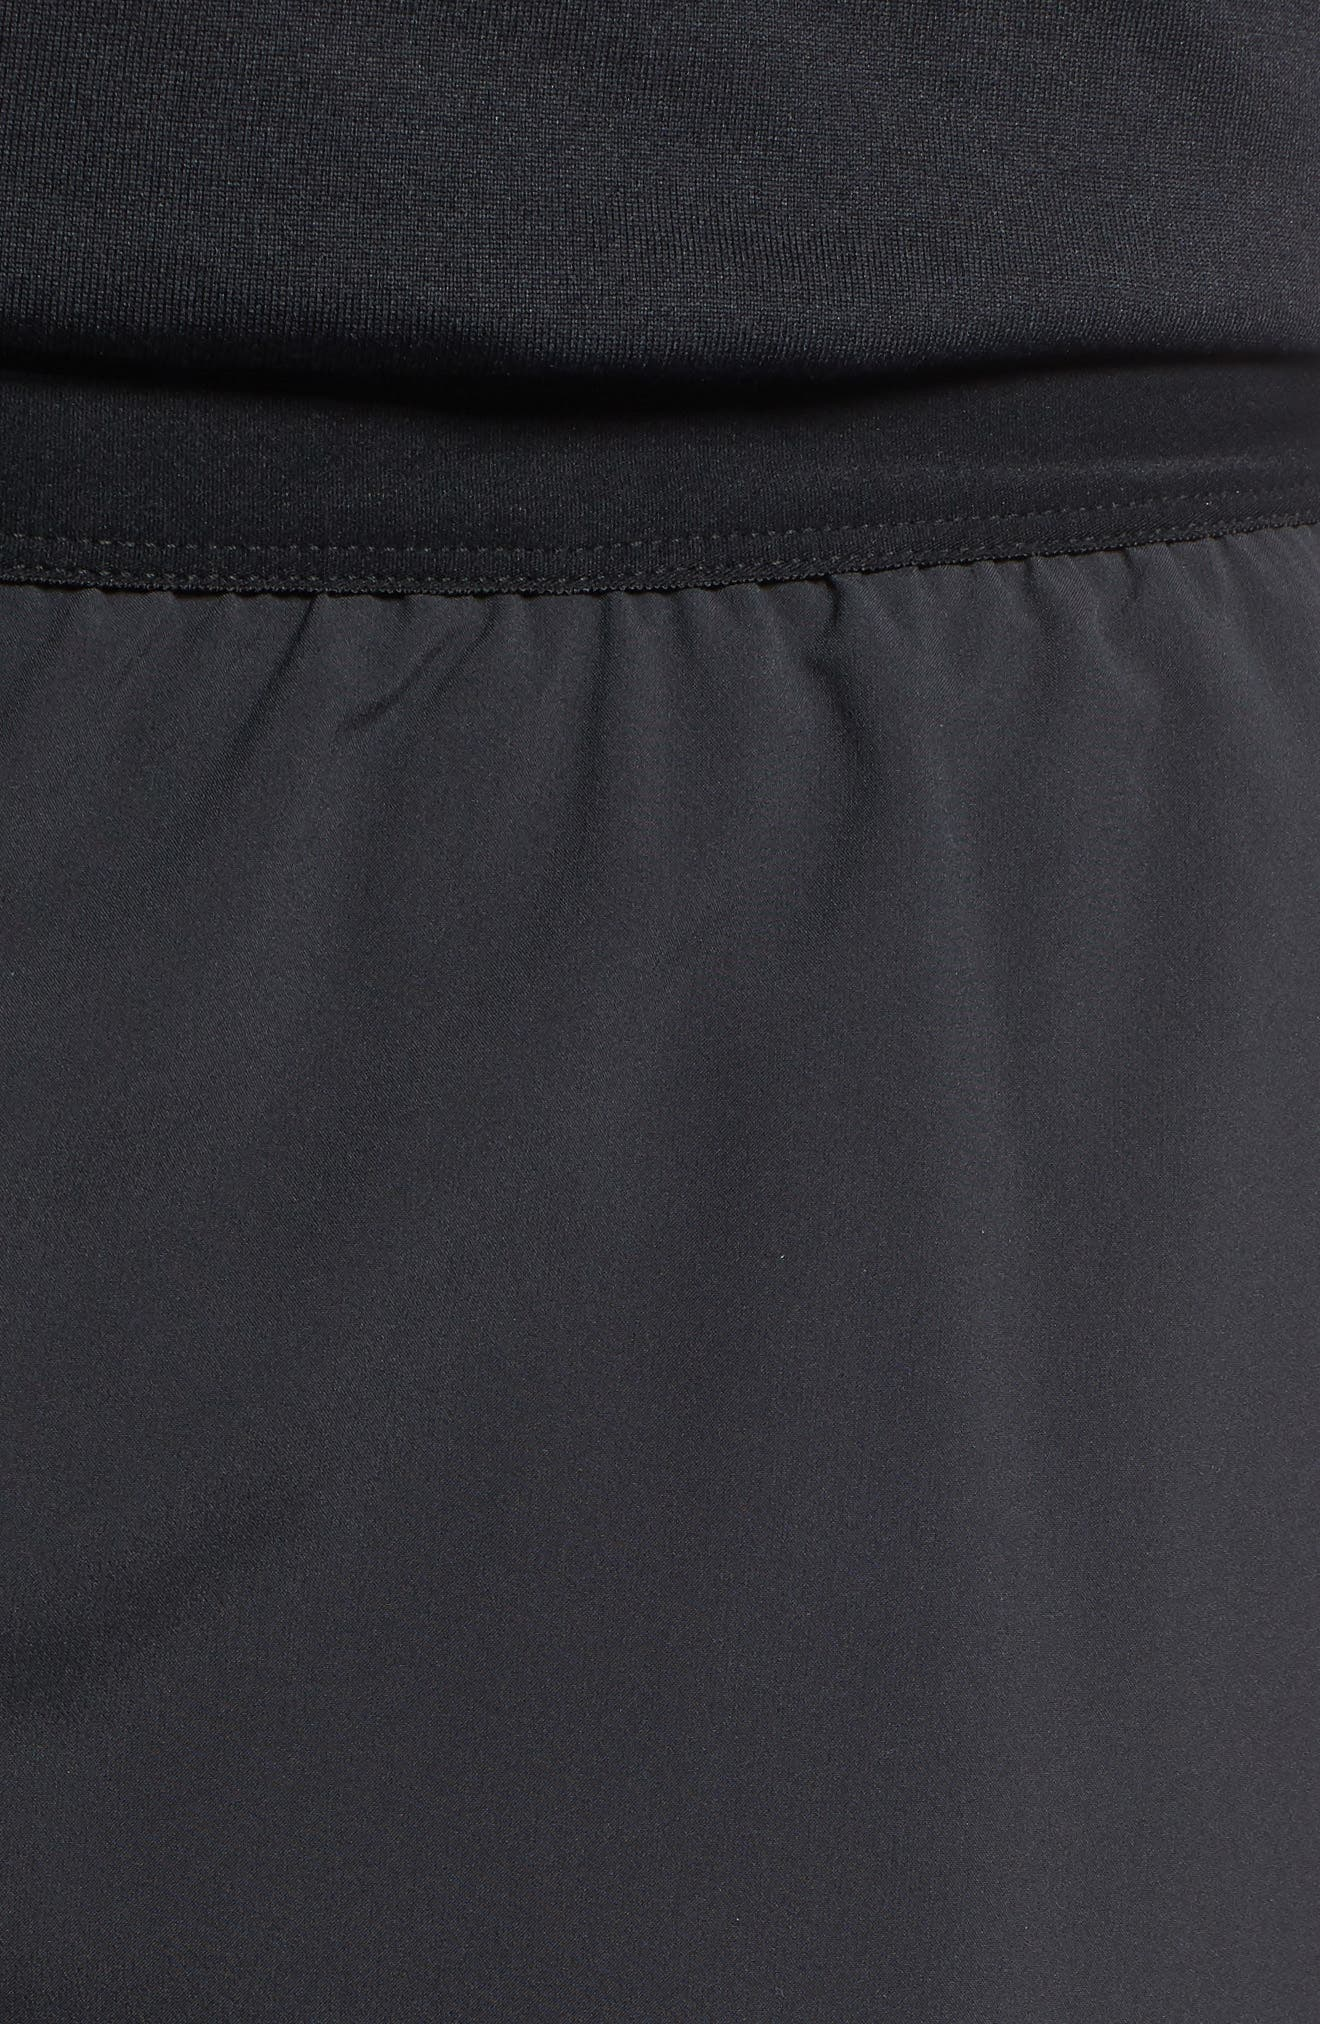 Flex Distance Running Shorts,                             Alternate thumbnail 5, color,                             BLACK/ BLACK